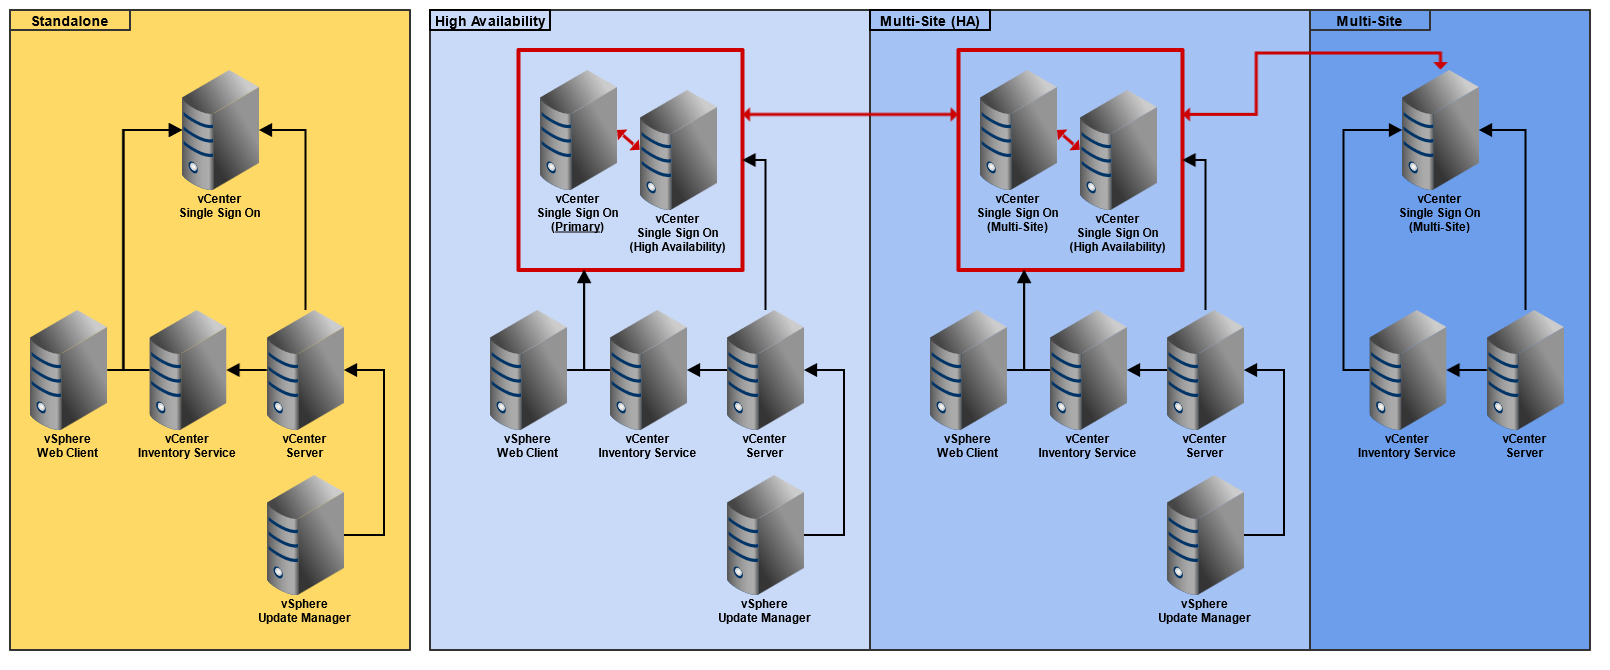 VMware Role Dependencies